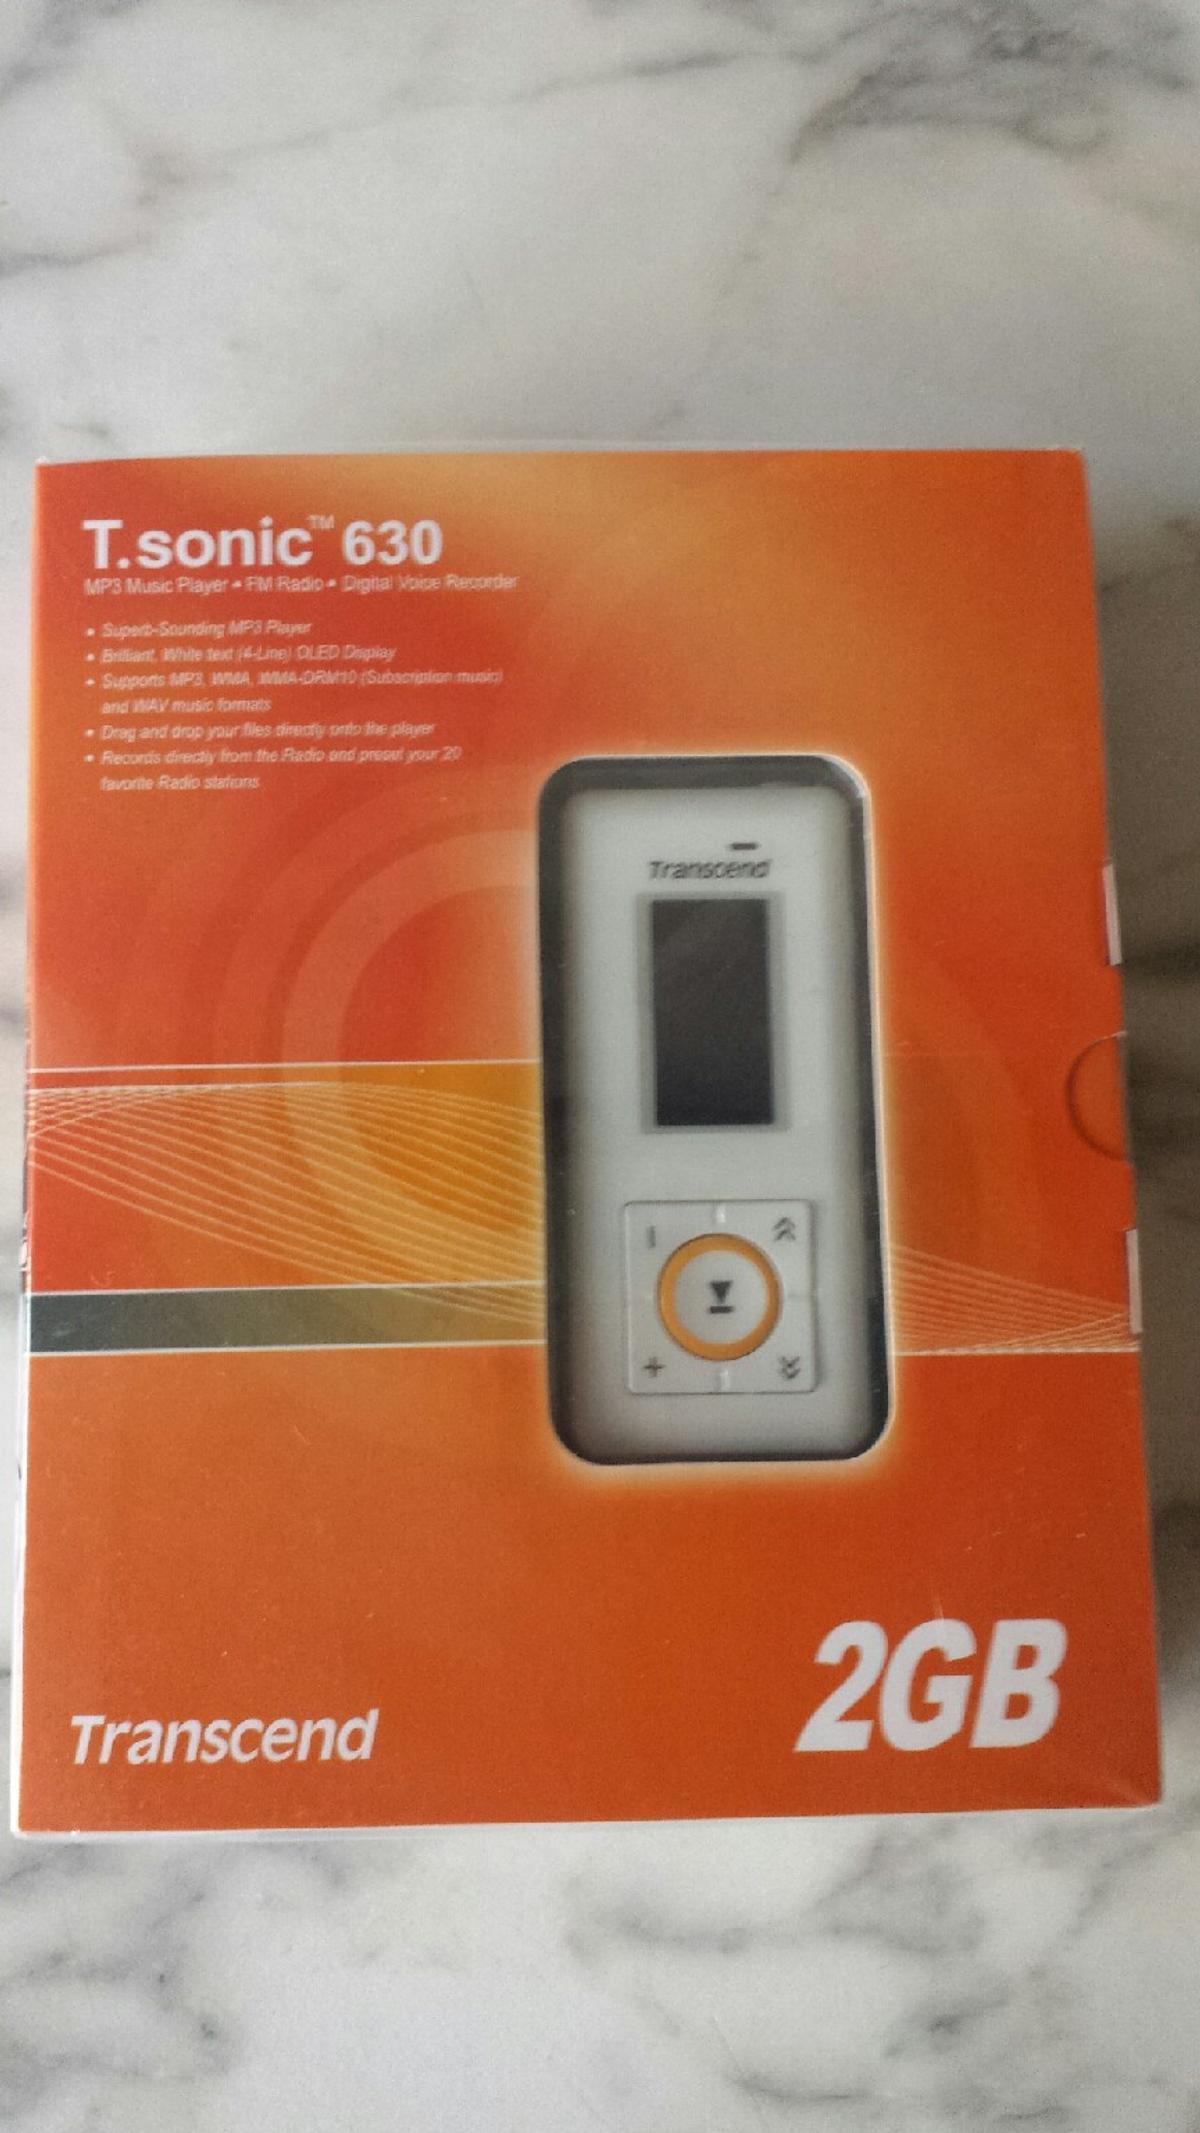 T Sonic 630 2GB MP3-Player